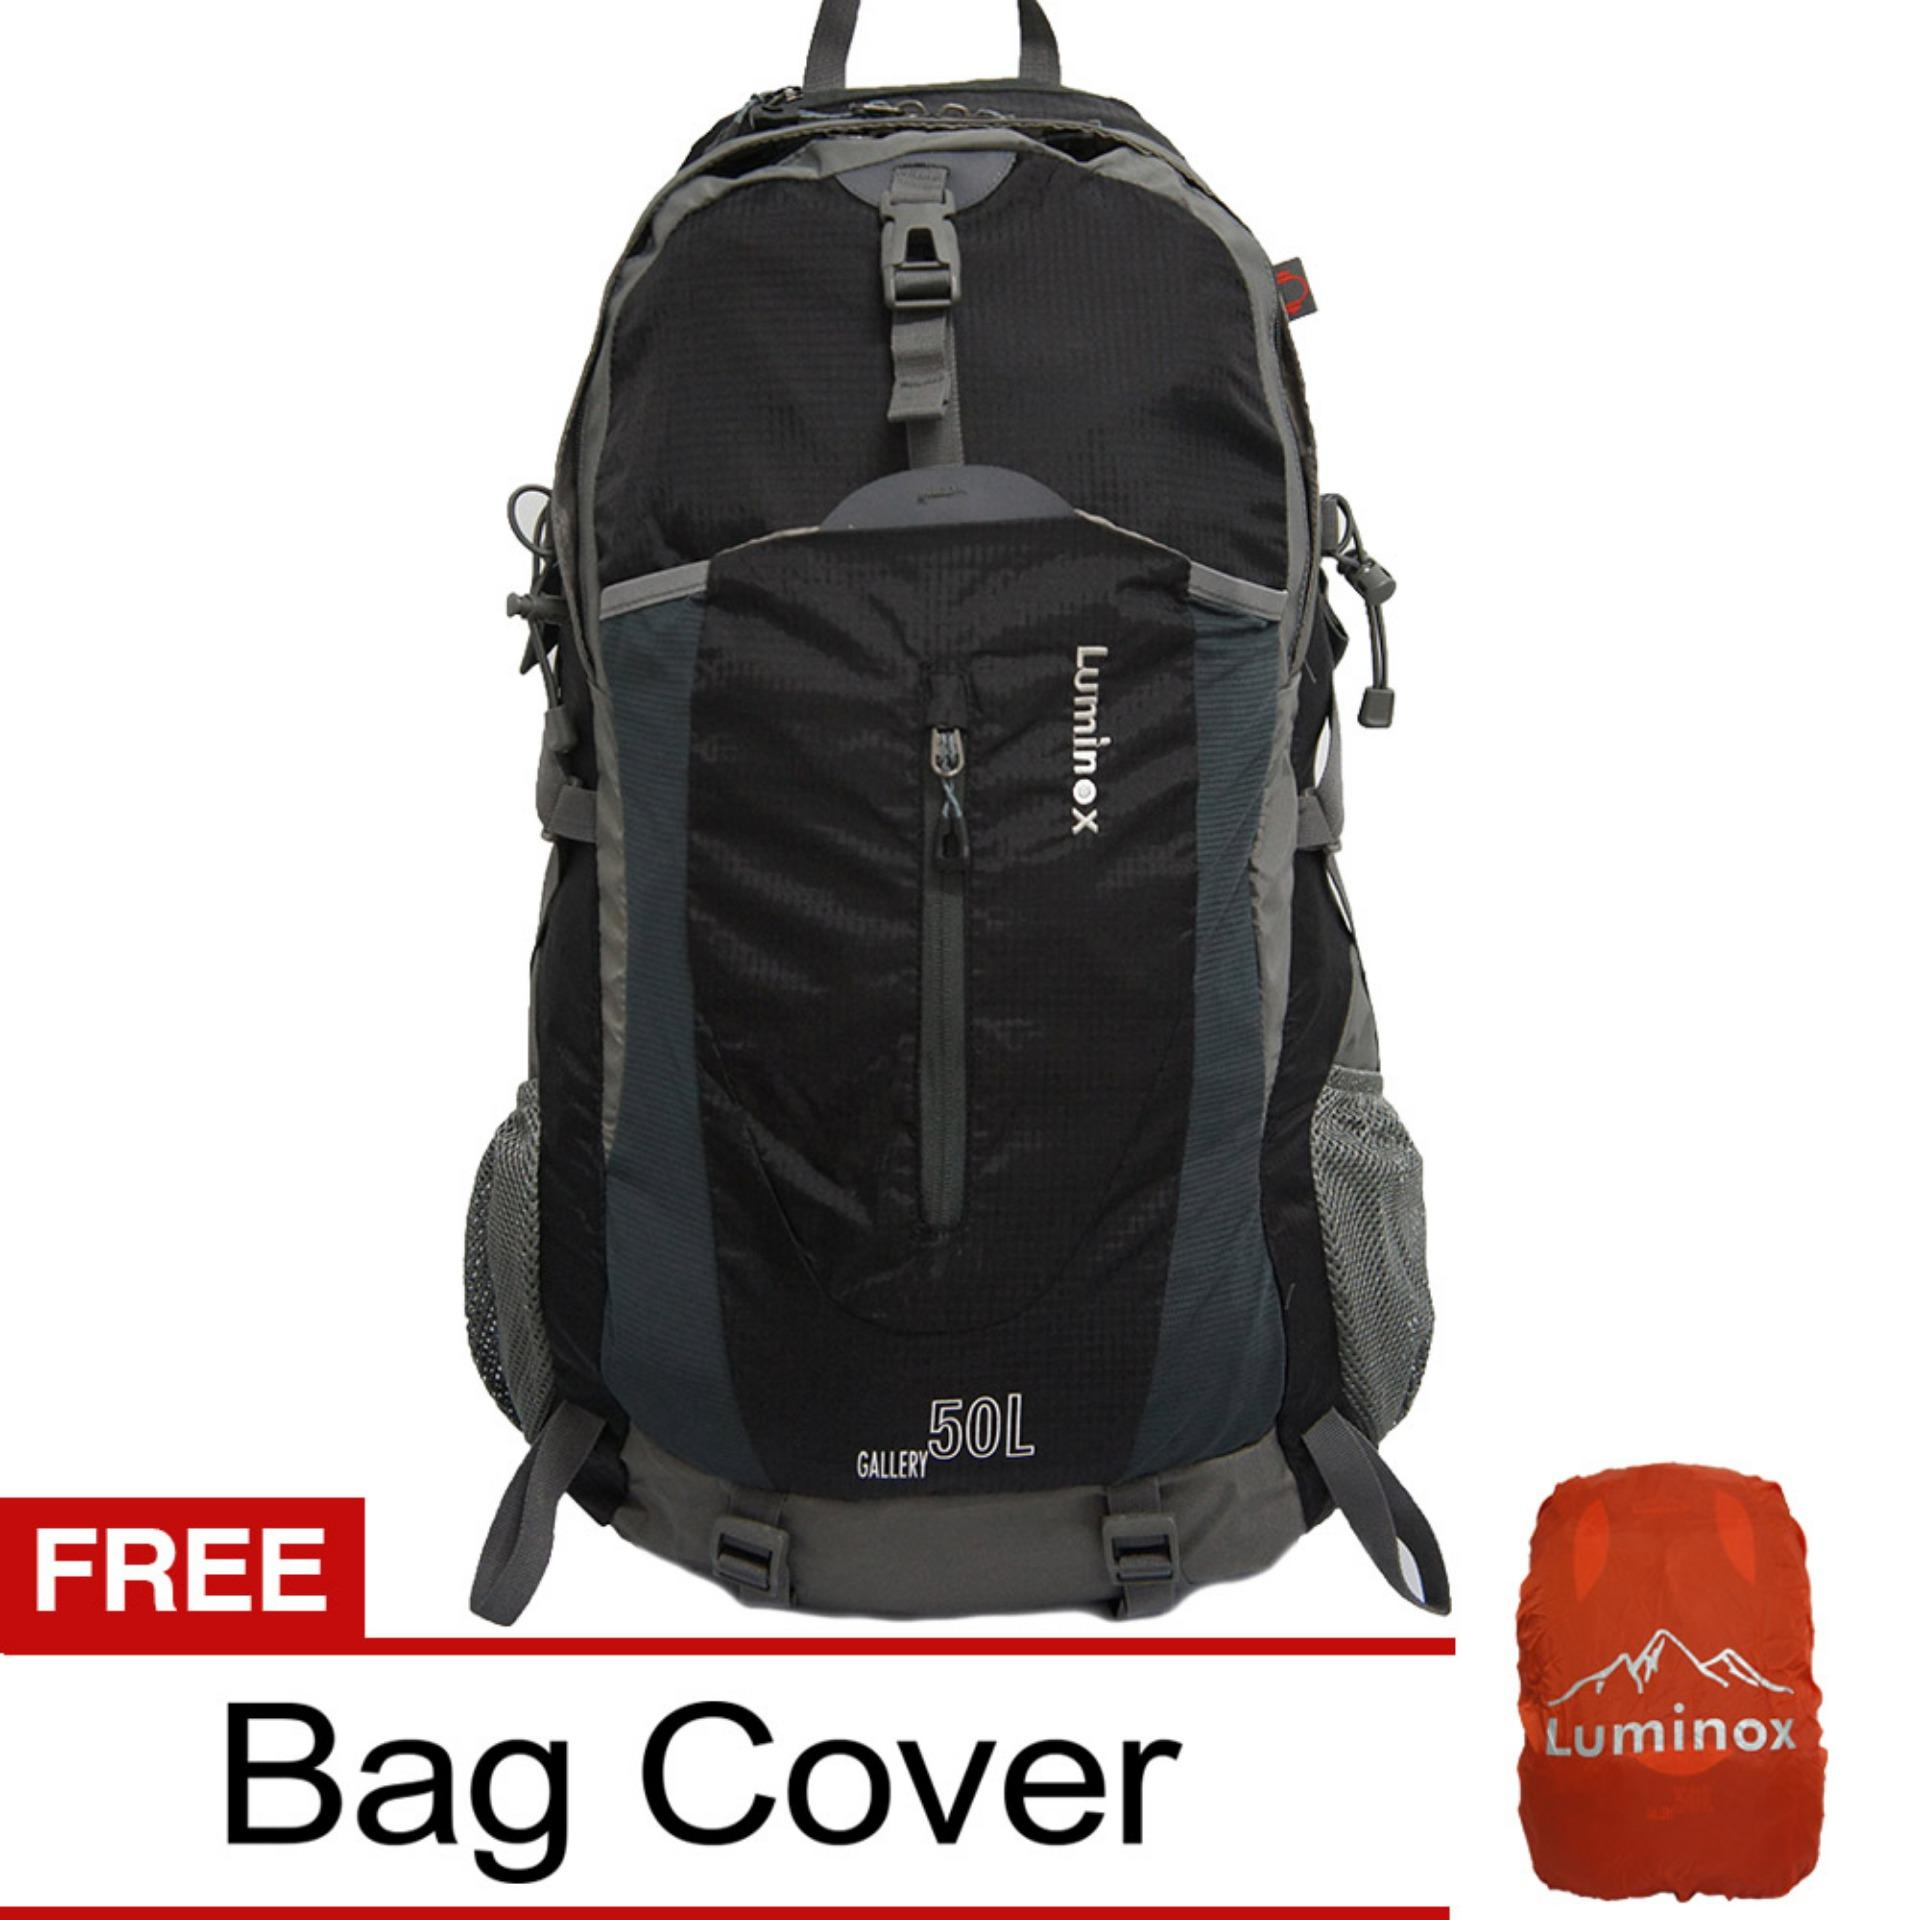 Toko Luminox Tas Hiking Backpack Ransel Travel Outdoor Carrier 5028 50 Liter Gratis Rain Cover Hitam Hk Indonesia